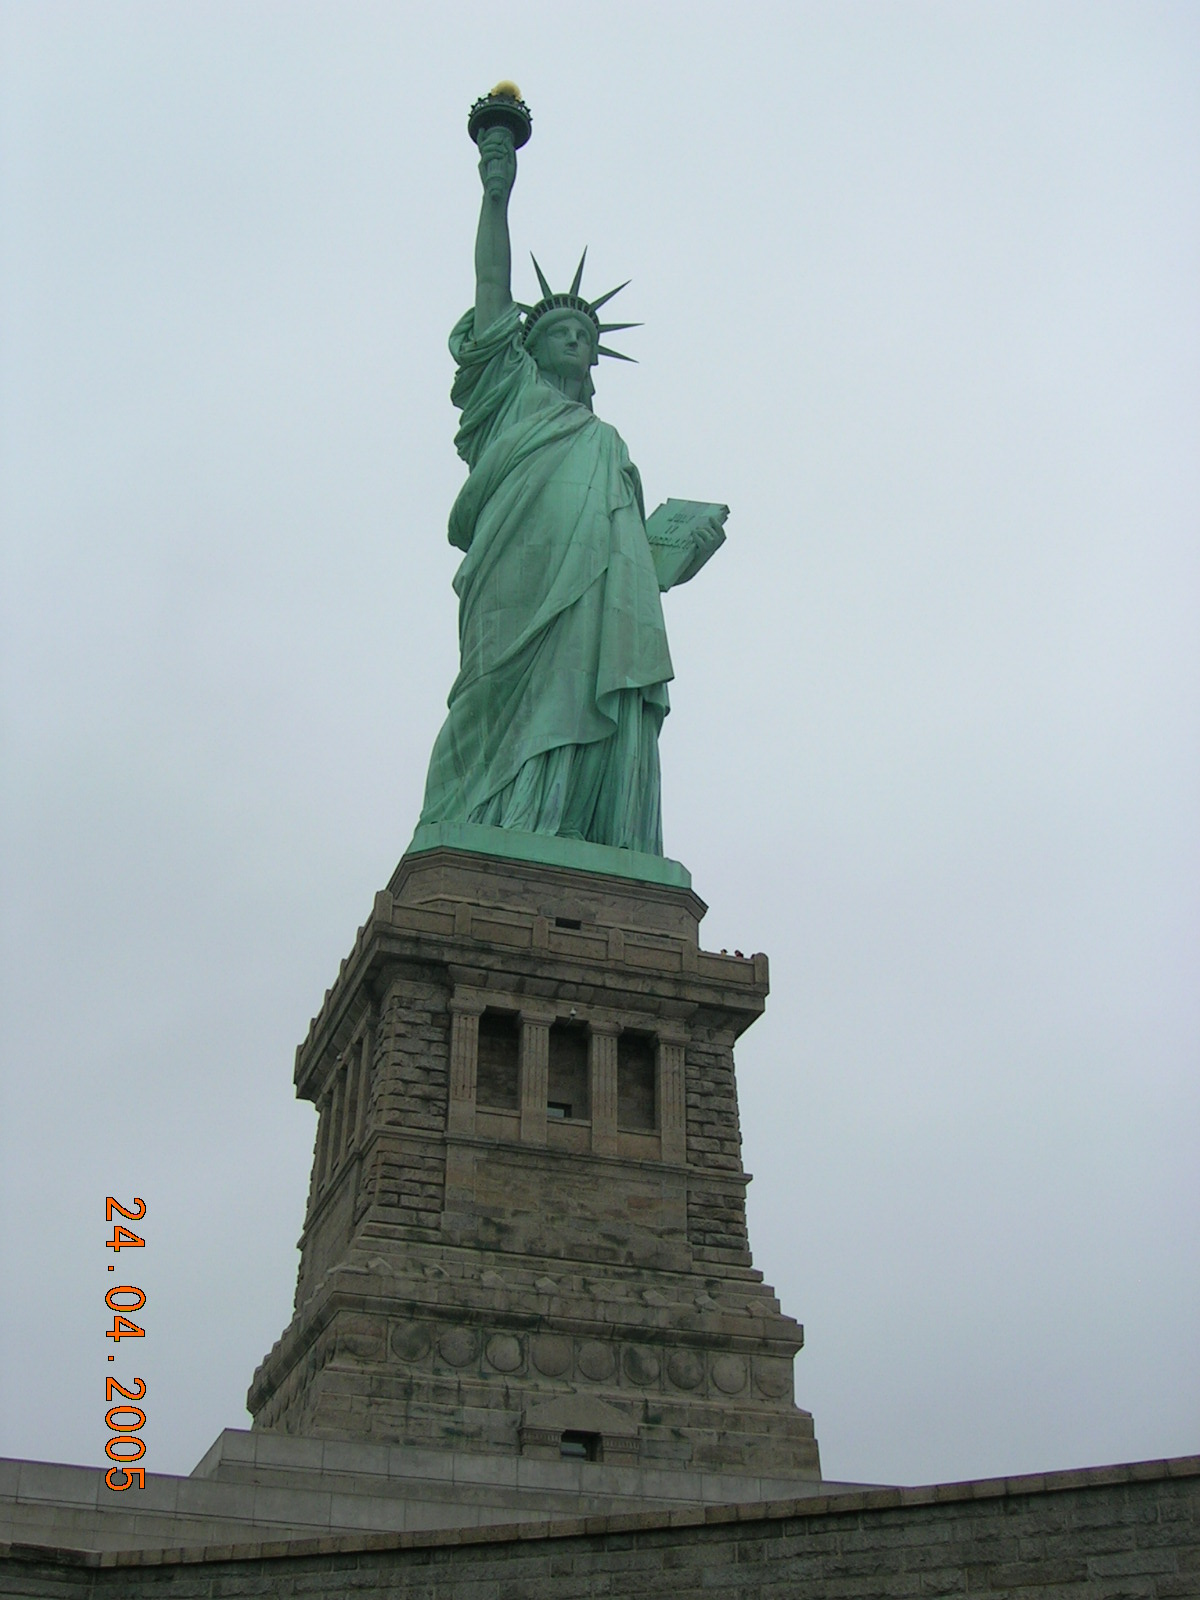 File:Statue of Liberty 4.jpg - Wikimedia Commons